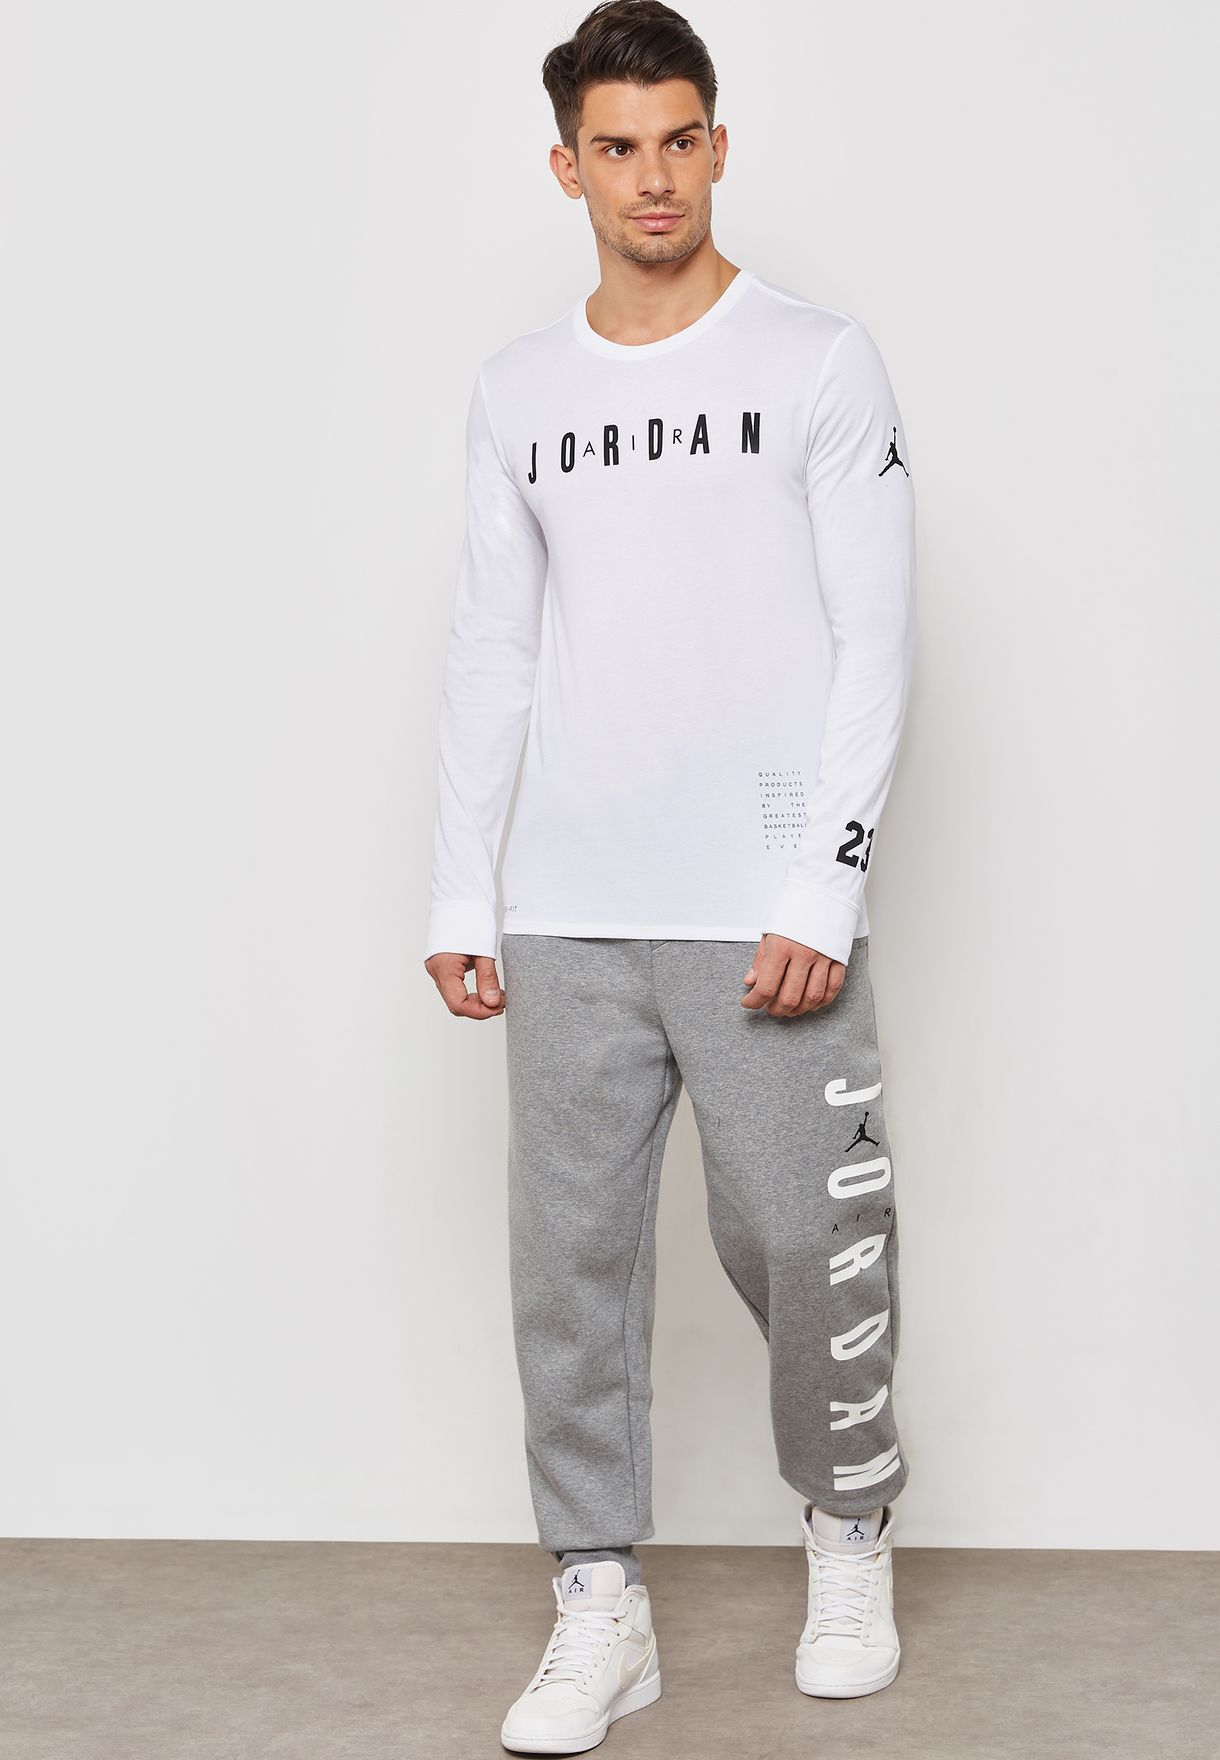 578ae5104aea Shop Nike grey Jordan Jumpman Air Fleece Sweatpants AT4913-091 for ...